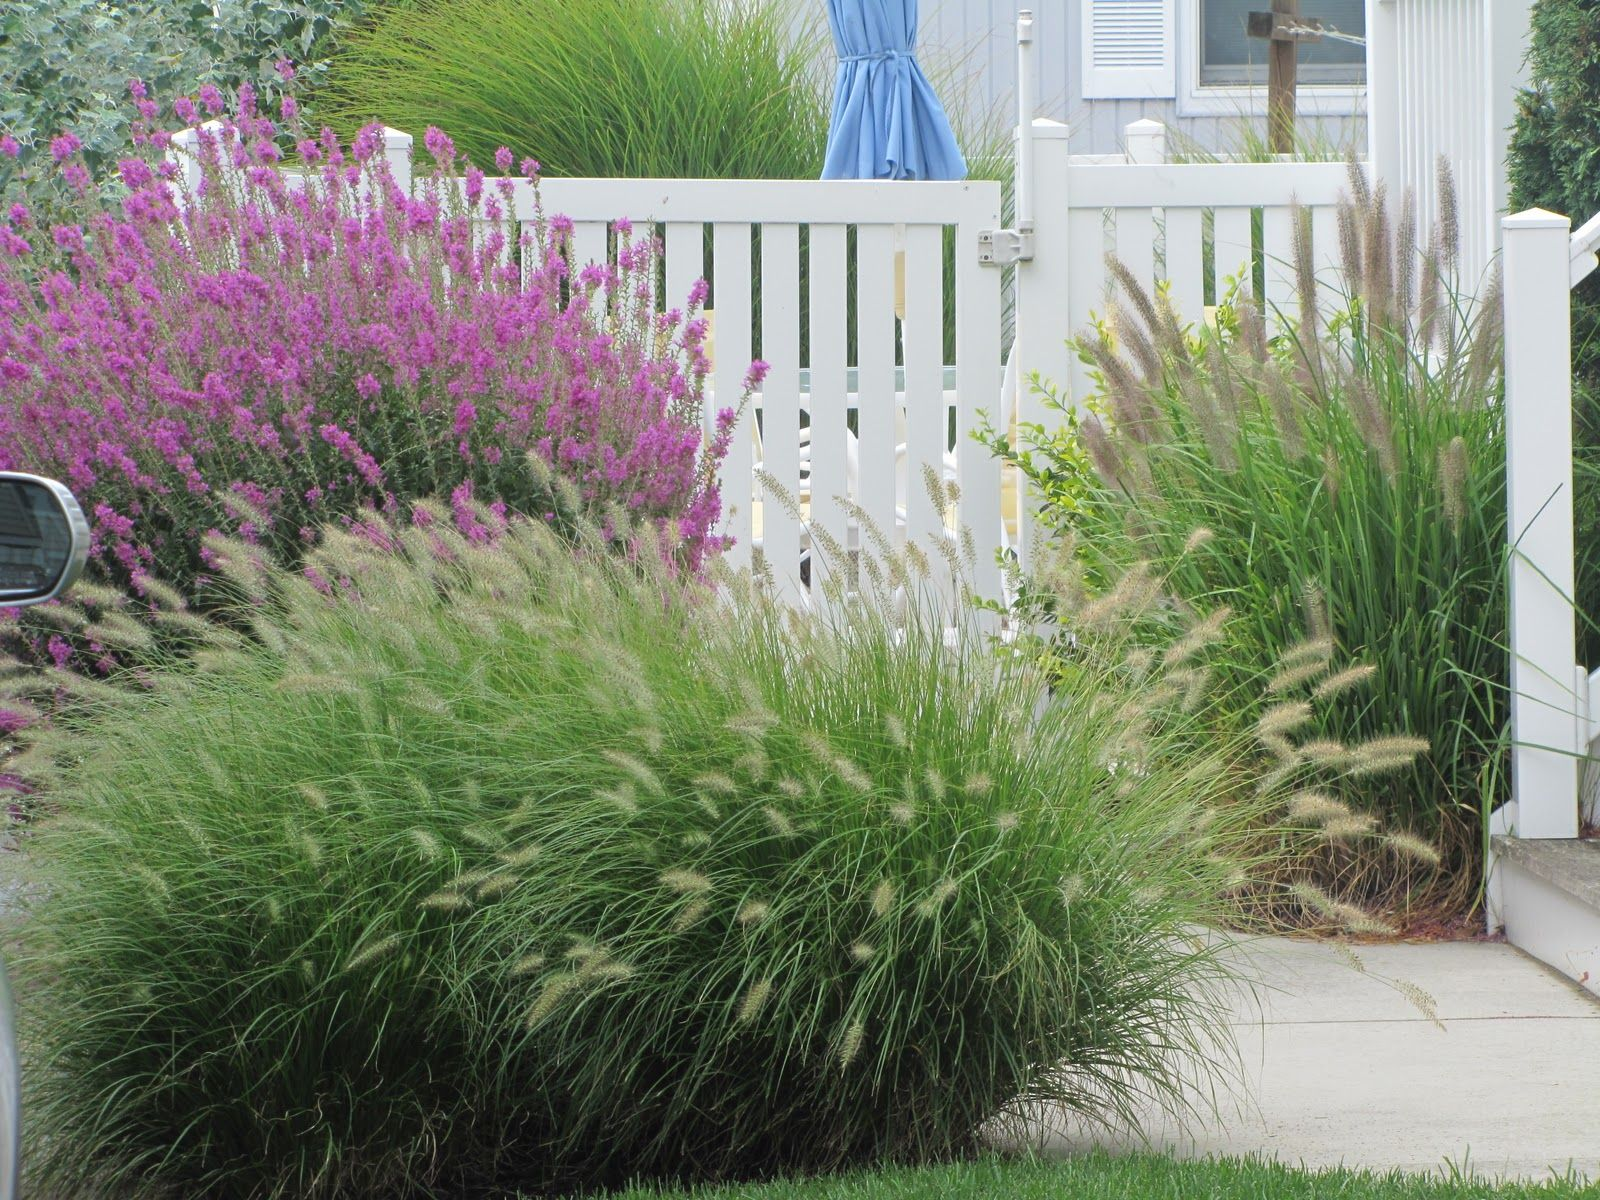 new landscaping grasses ideas jersey shore an obsessive neurotic gardener suggestion and